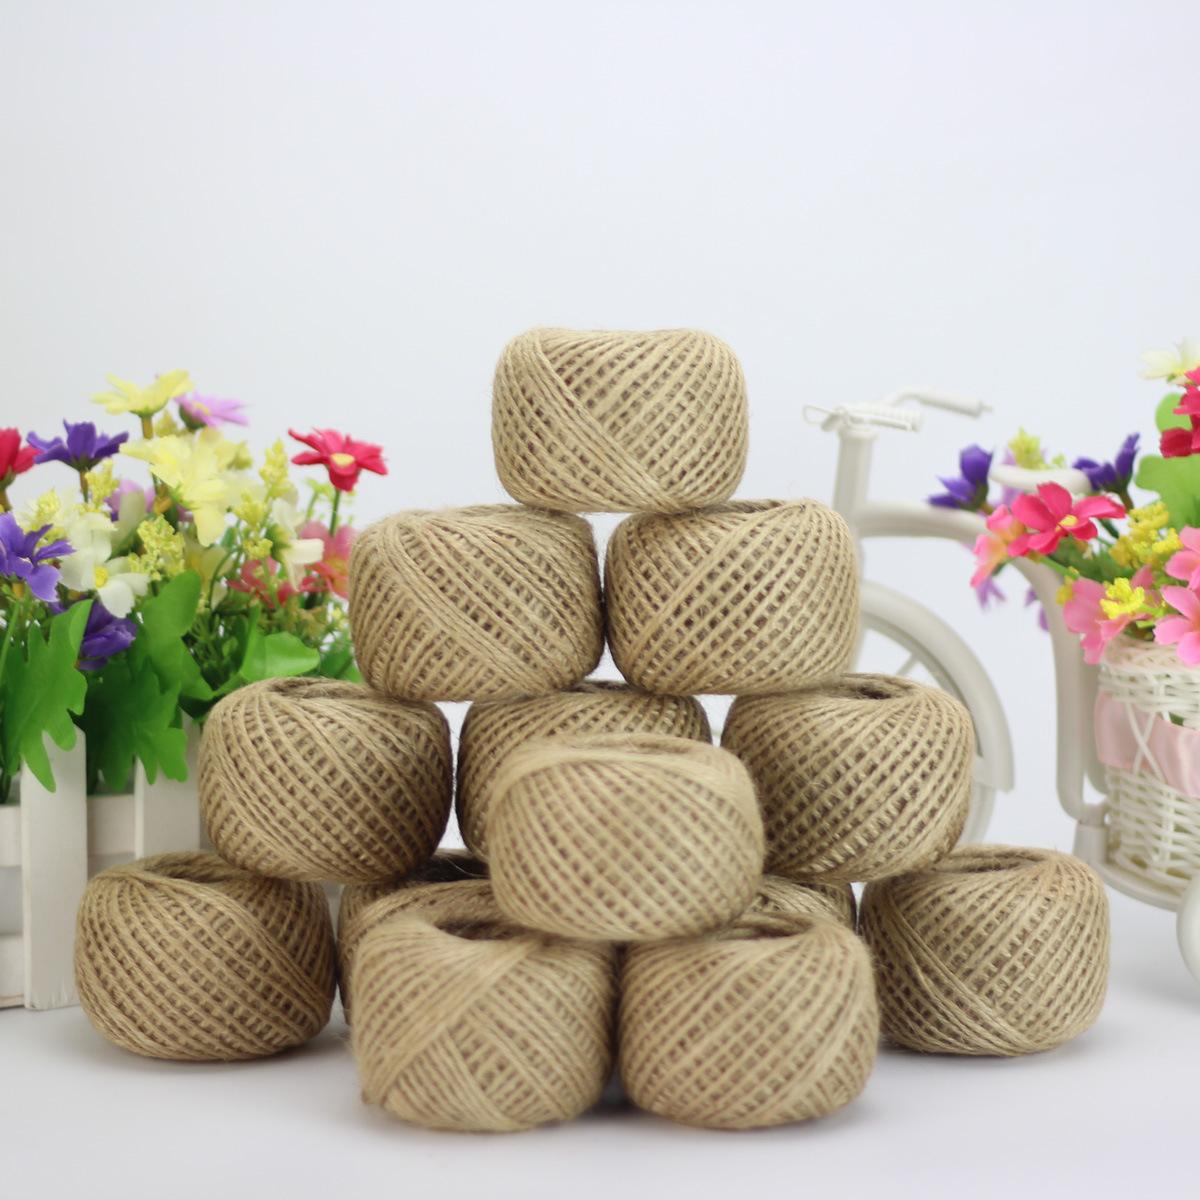 Jute Twine 30Meter Natural Sisal 2mm Rustic Tags Wrap Wedding Decoration Crafts Twisted Rope String Cord Events Party Supplies(China)